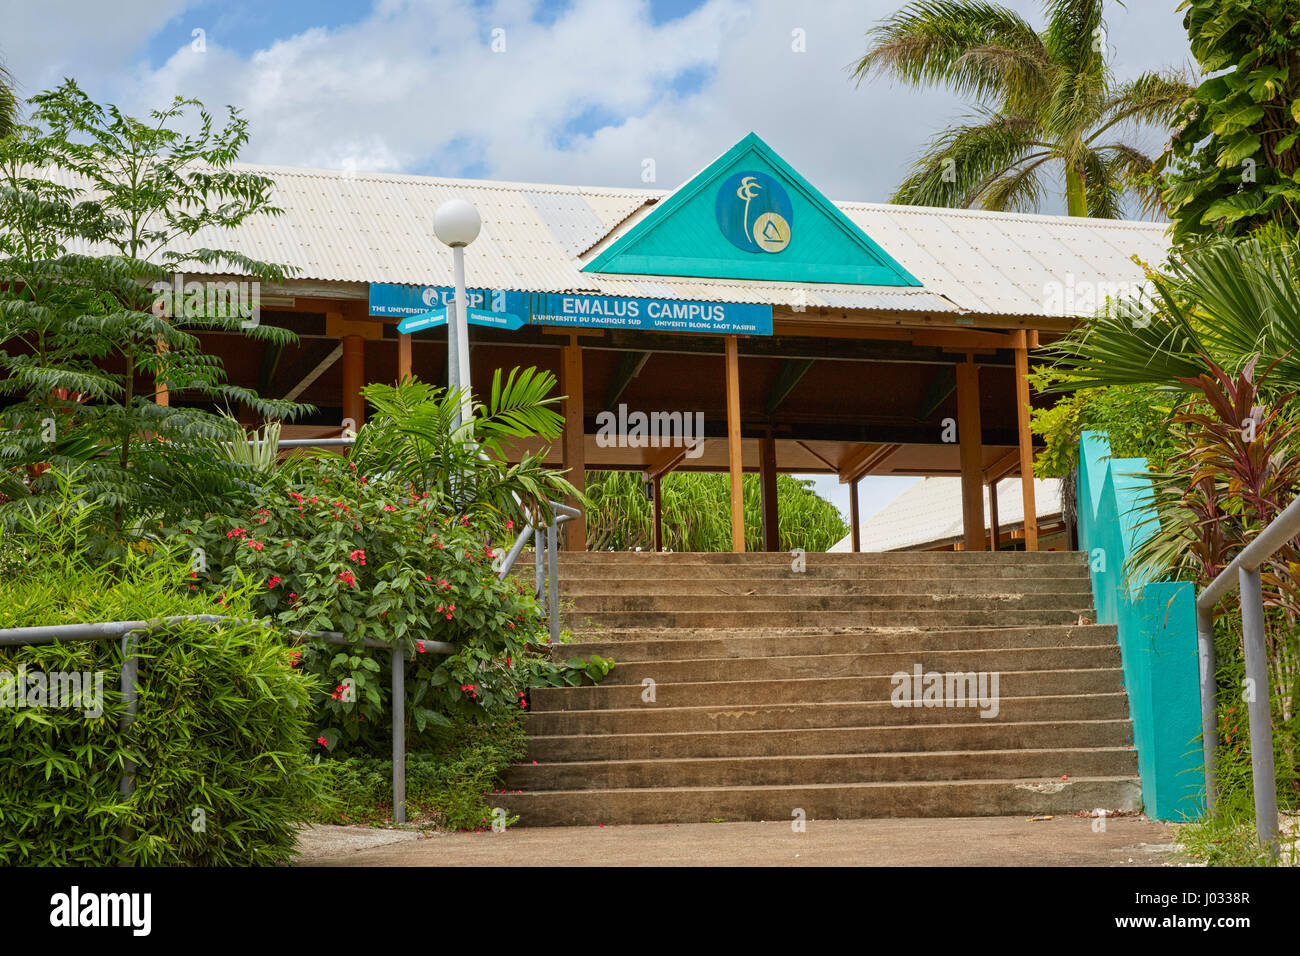 University of South Pacific, Emalus Campus, Efate Island, Vanuatu - Stock Image